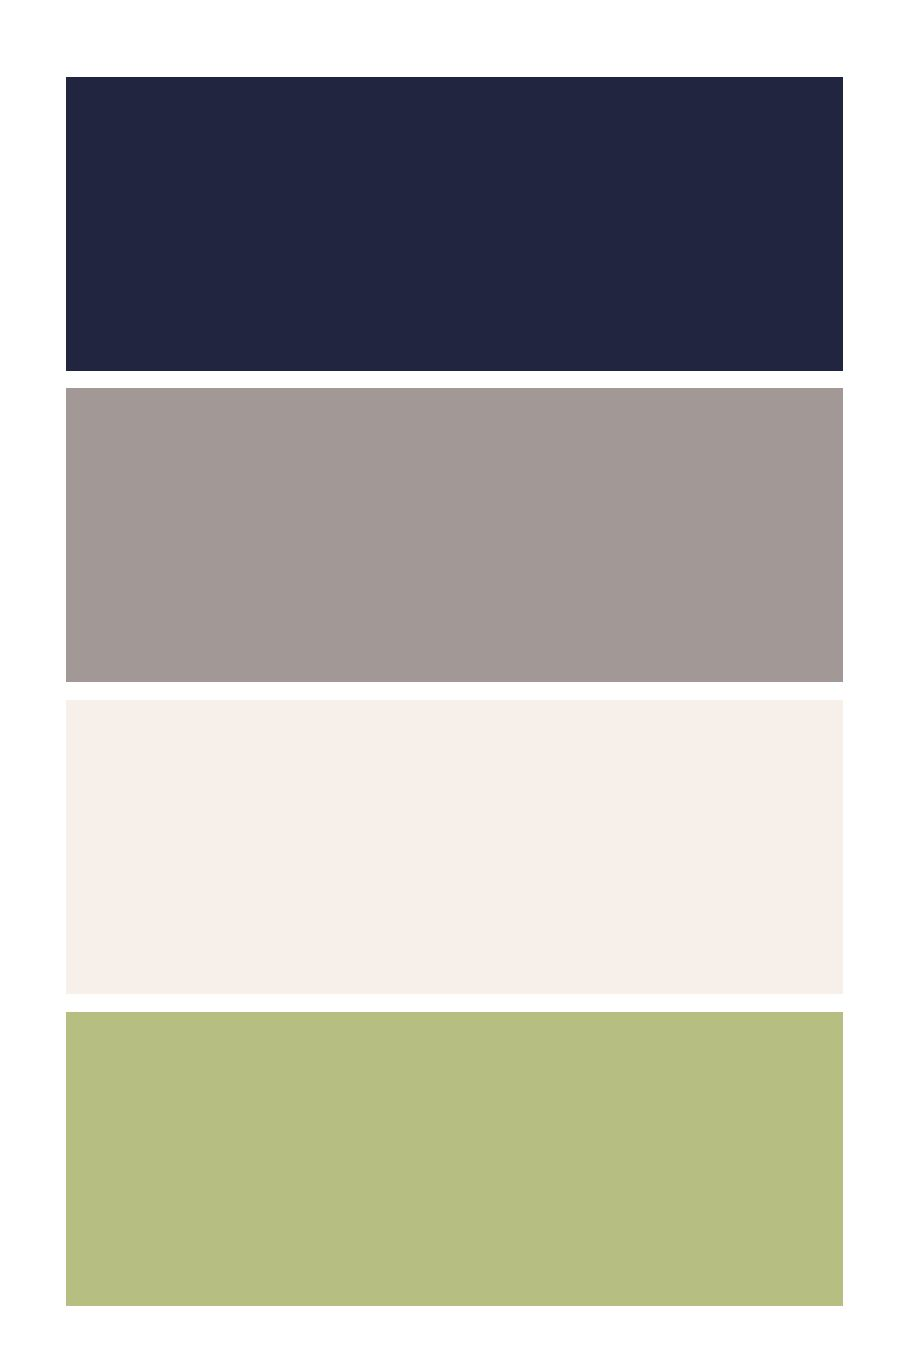 Colour Schemes For Living Rooms Green Used Room Furniture Navy Gray Creme And Color Scheme Have Grey Walls Cream Ish Curtains Will Darker Sectional Pull In Greens Maybe